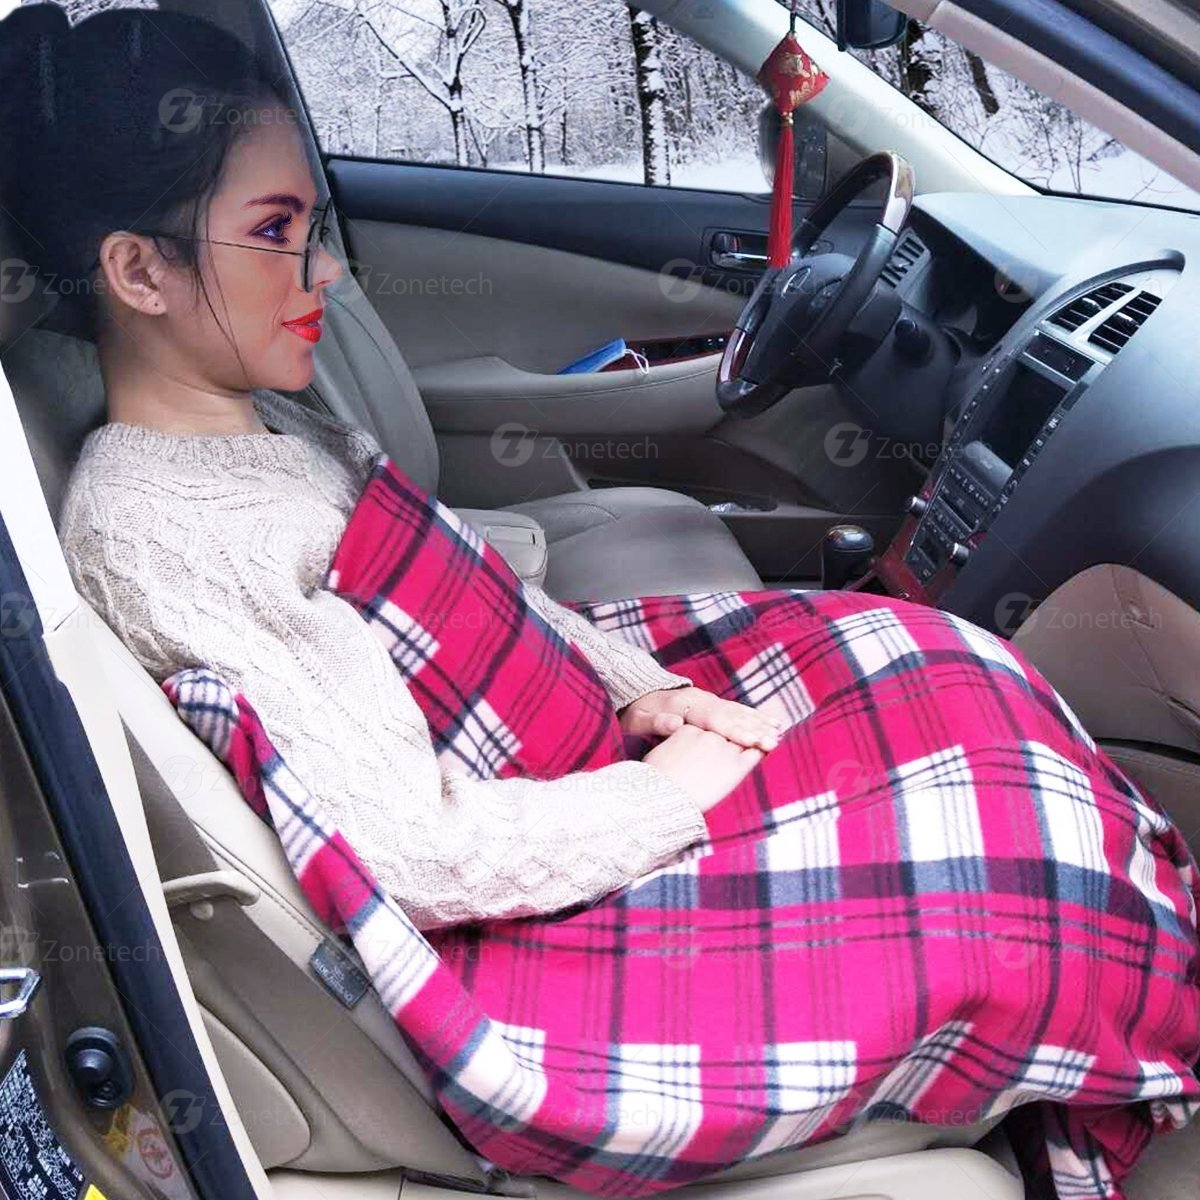 72603526ff Zone Tech Car Heated Travel Blanket – Plaid 12V Automotive Comfortable Heating  Car Seat Blanket Great for Summer - Walmart.com